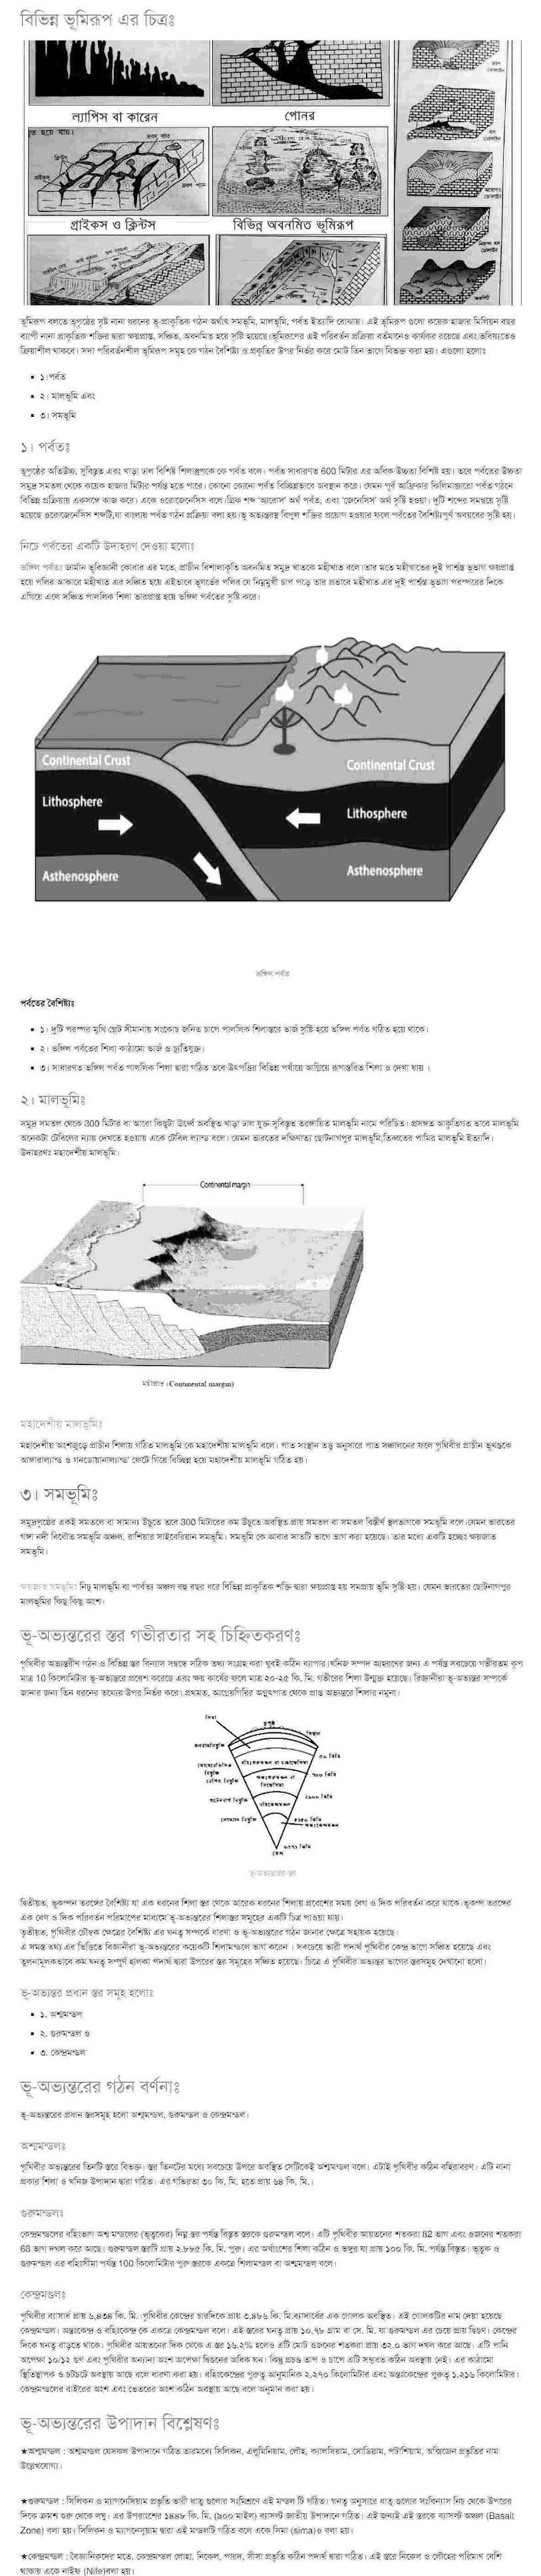 HSC 5th Week Geography Assignment Answer 2022